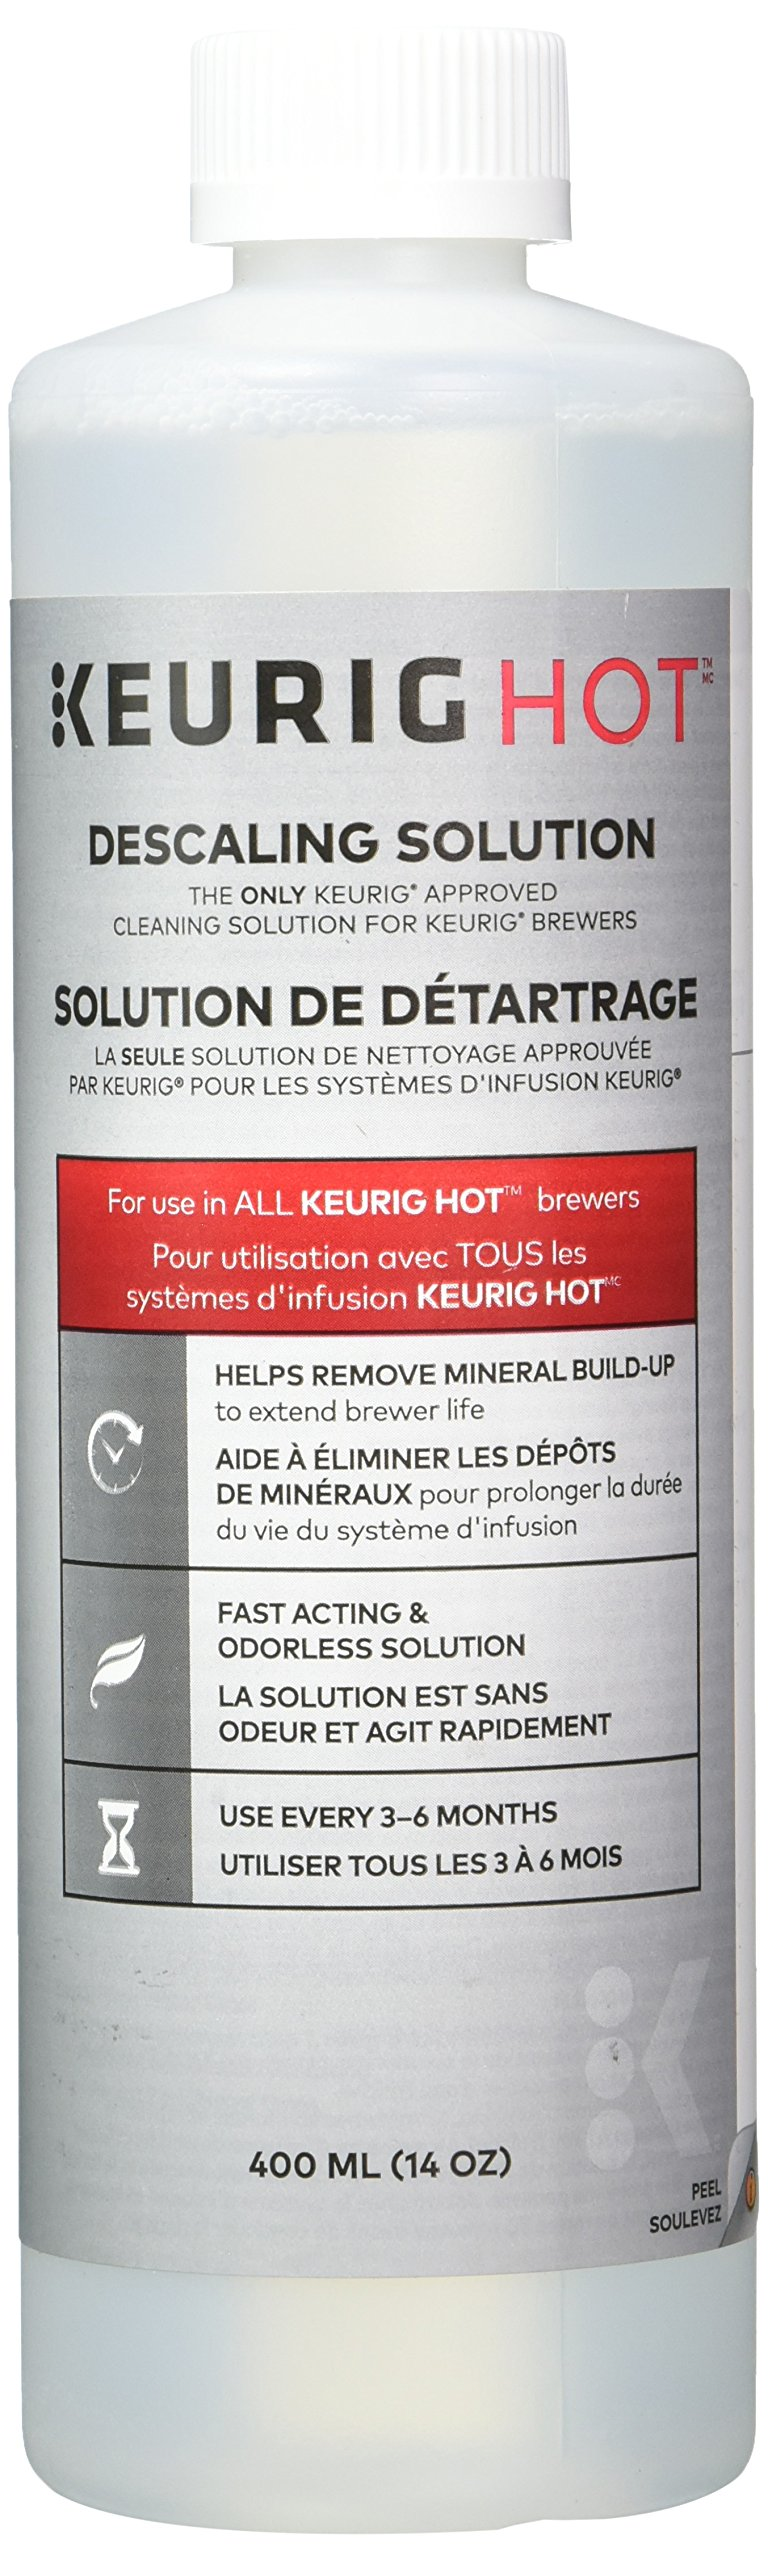 Keurig Descaling Solution For All Keurig 2.0 and 1.0 K-Cup Pod Coffee Makers